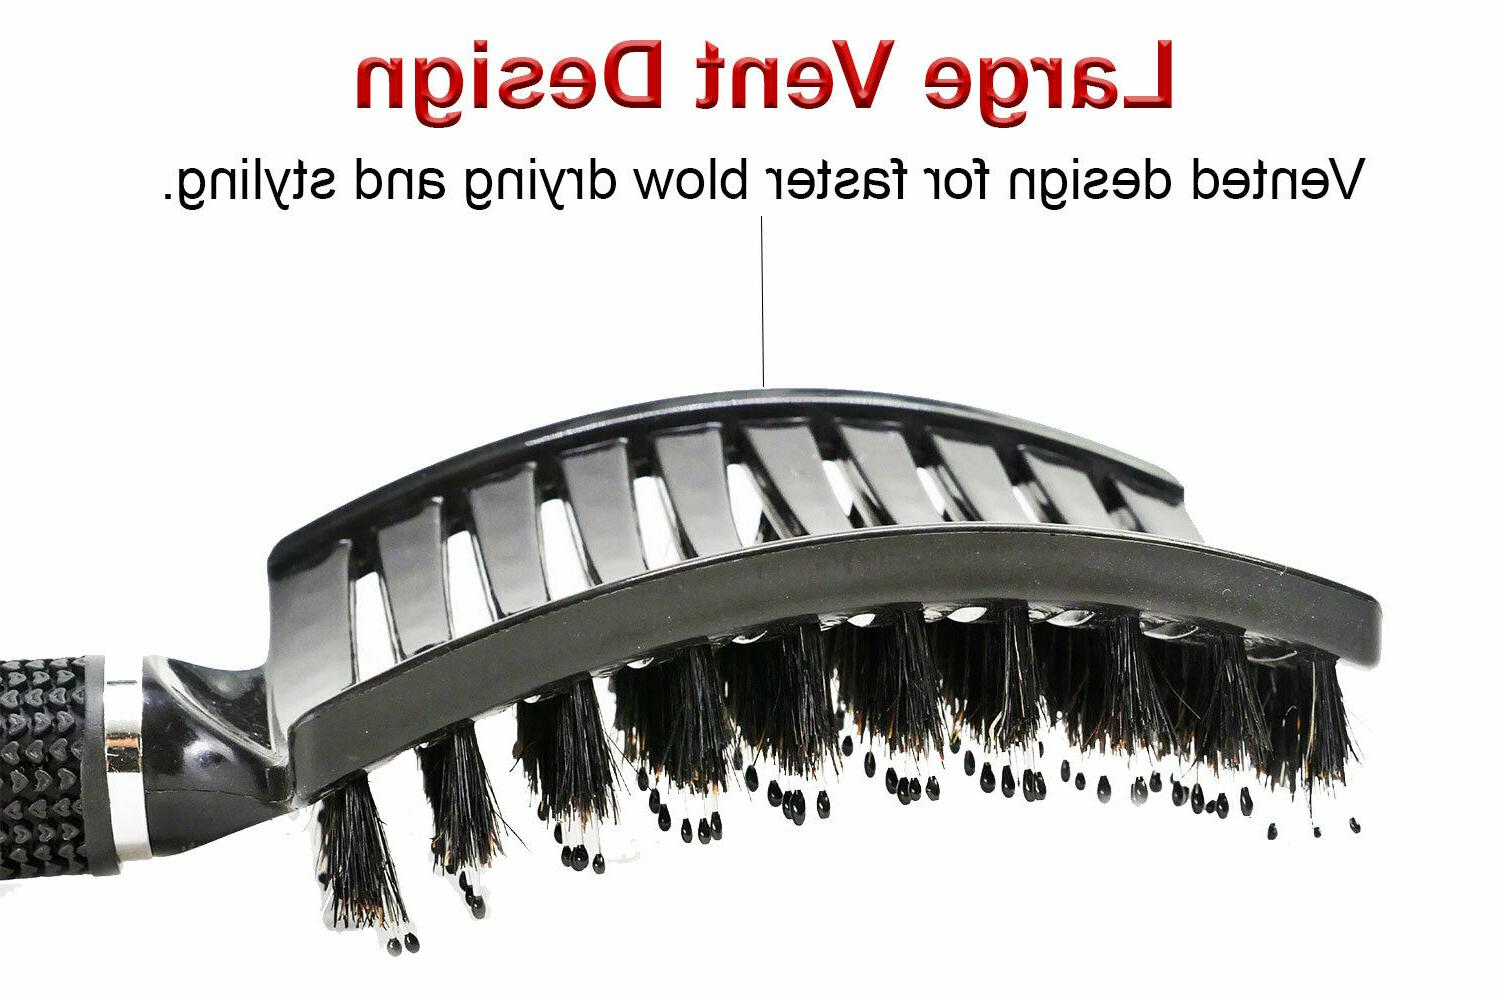 Curved Vented Bristle Styling Hair Brush, Any or Women